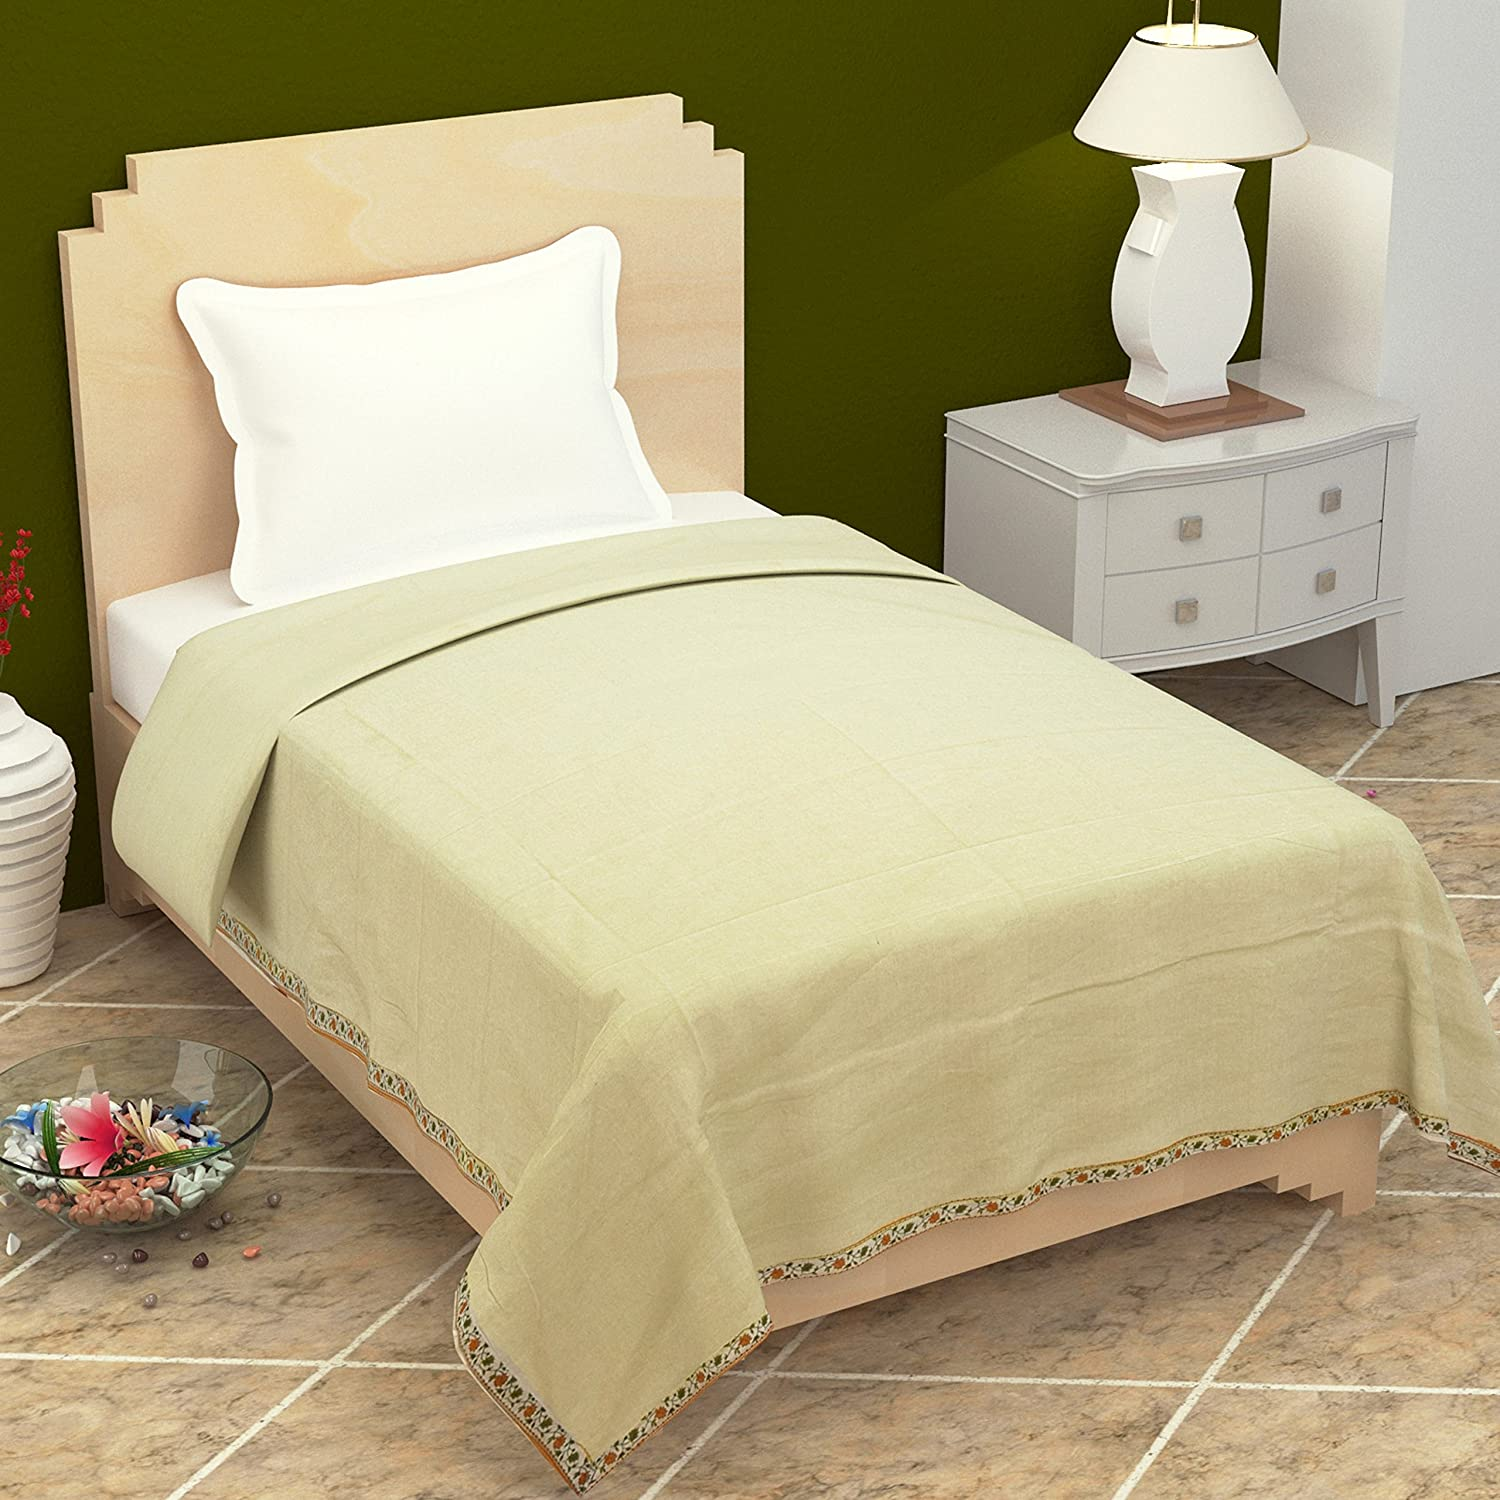 Cotton Top Cooling Sheets for Single Bed